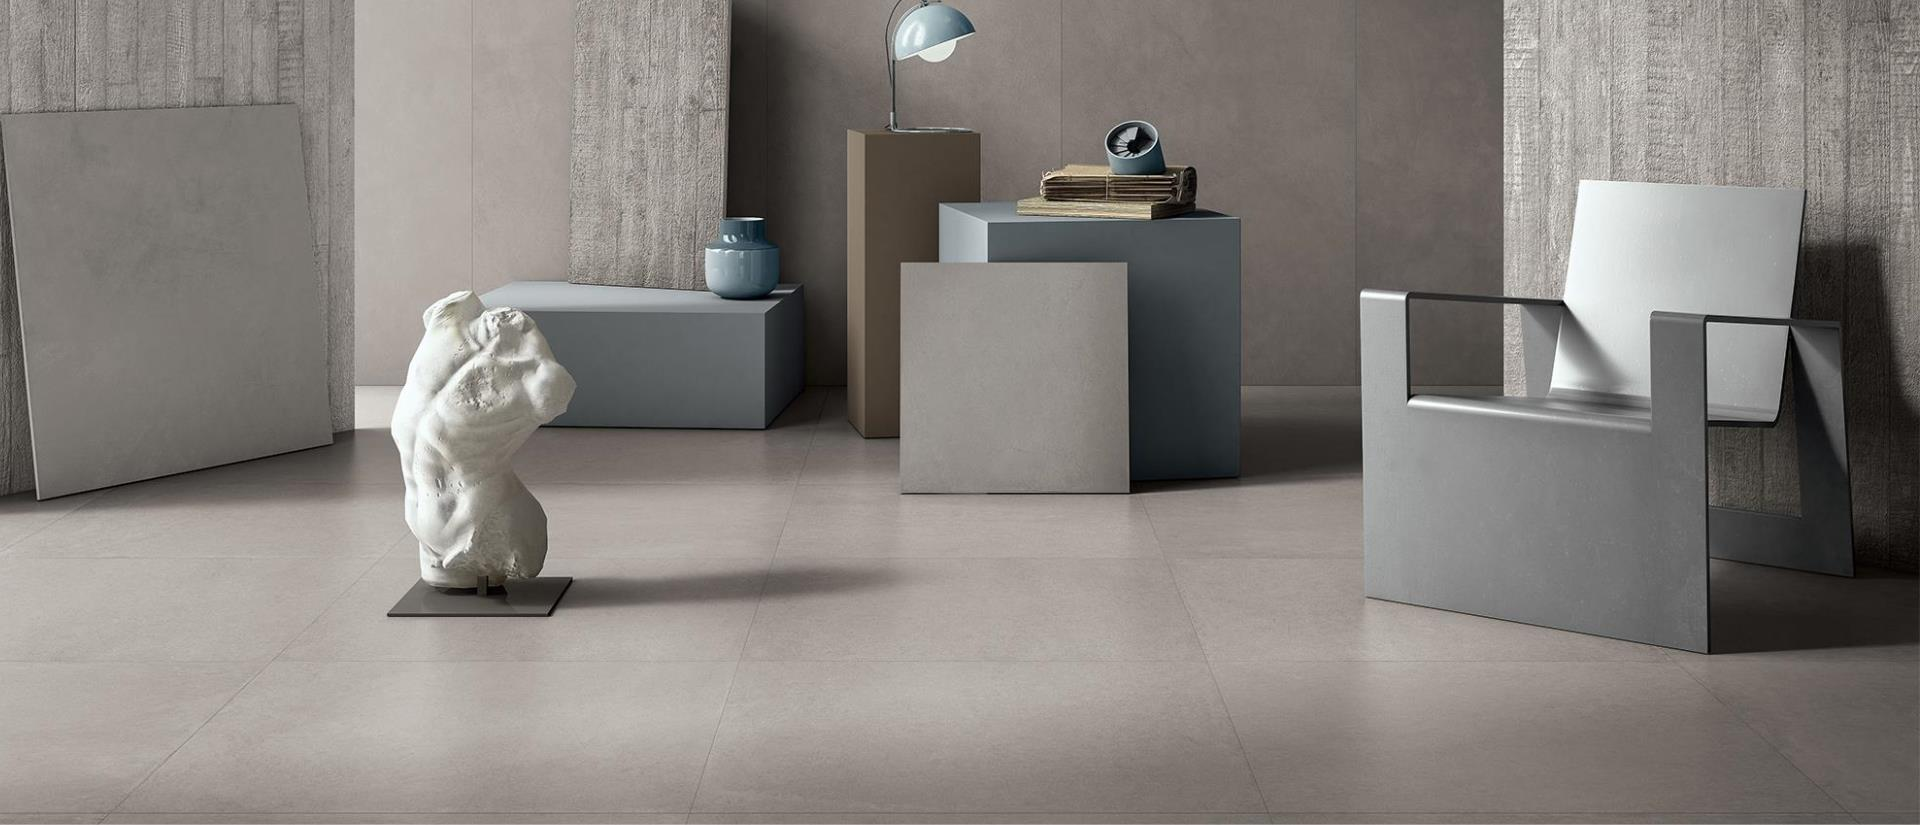 Cotto D Este Kerlite products - porcelain tiles and kerlite for floors and walls